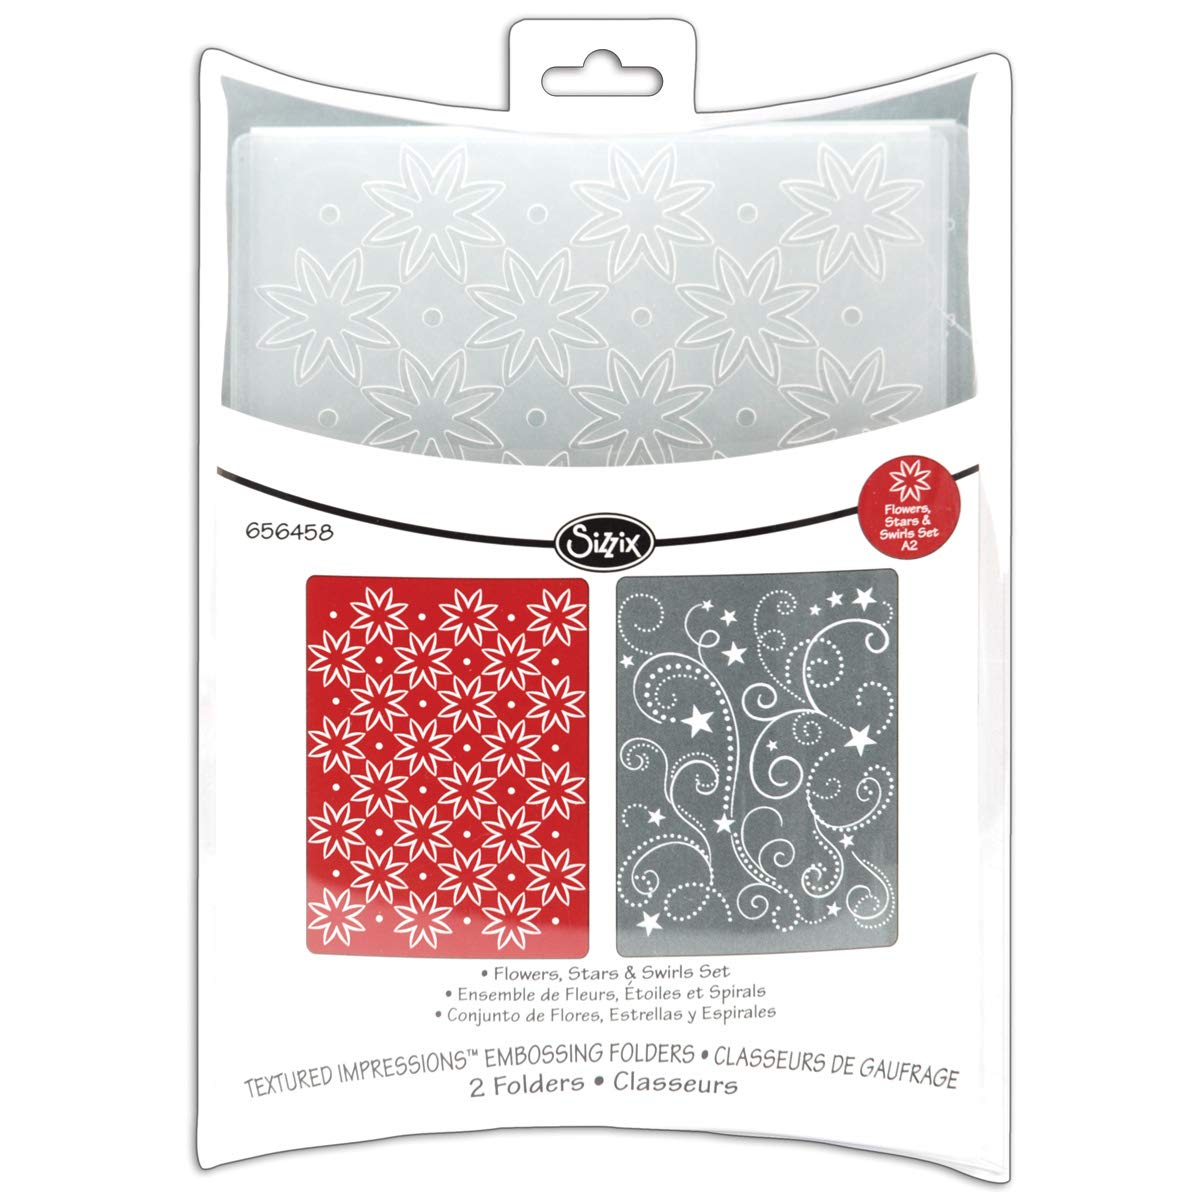 Textured Impressions Embossing Folders Flowers Stars and Swirls Set (8 Pack)